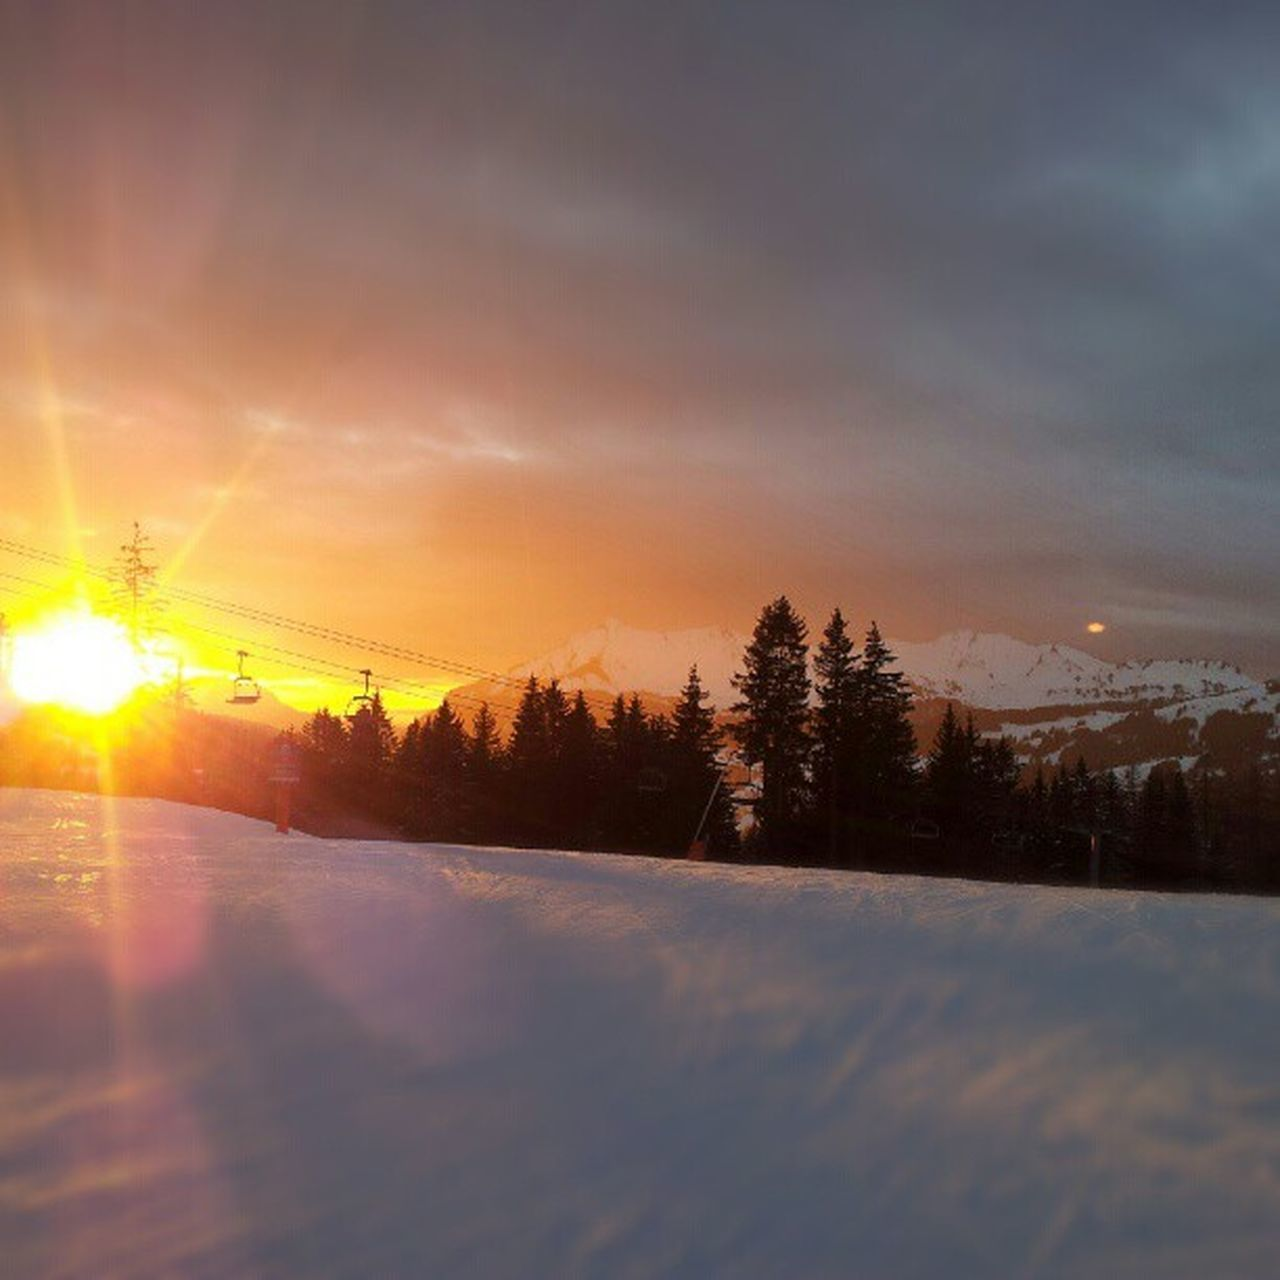 sunset, winter, nature, snow, cold temperature, scenics, sun, beauty in nature, tranquil scene, sky, tranquility, weather, tree, no people, outdoors, landscape, sunlight, day